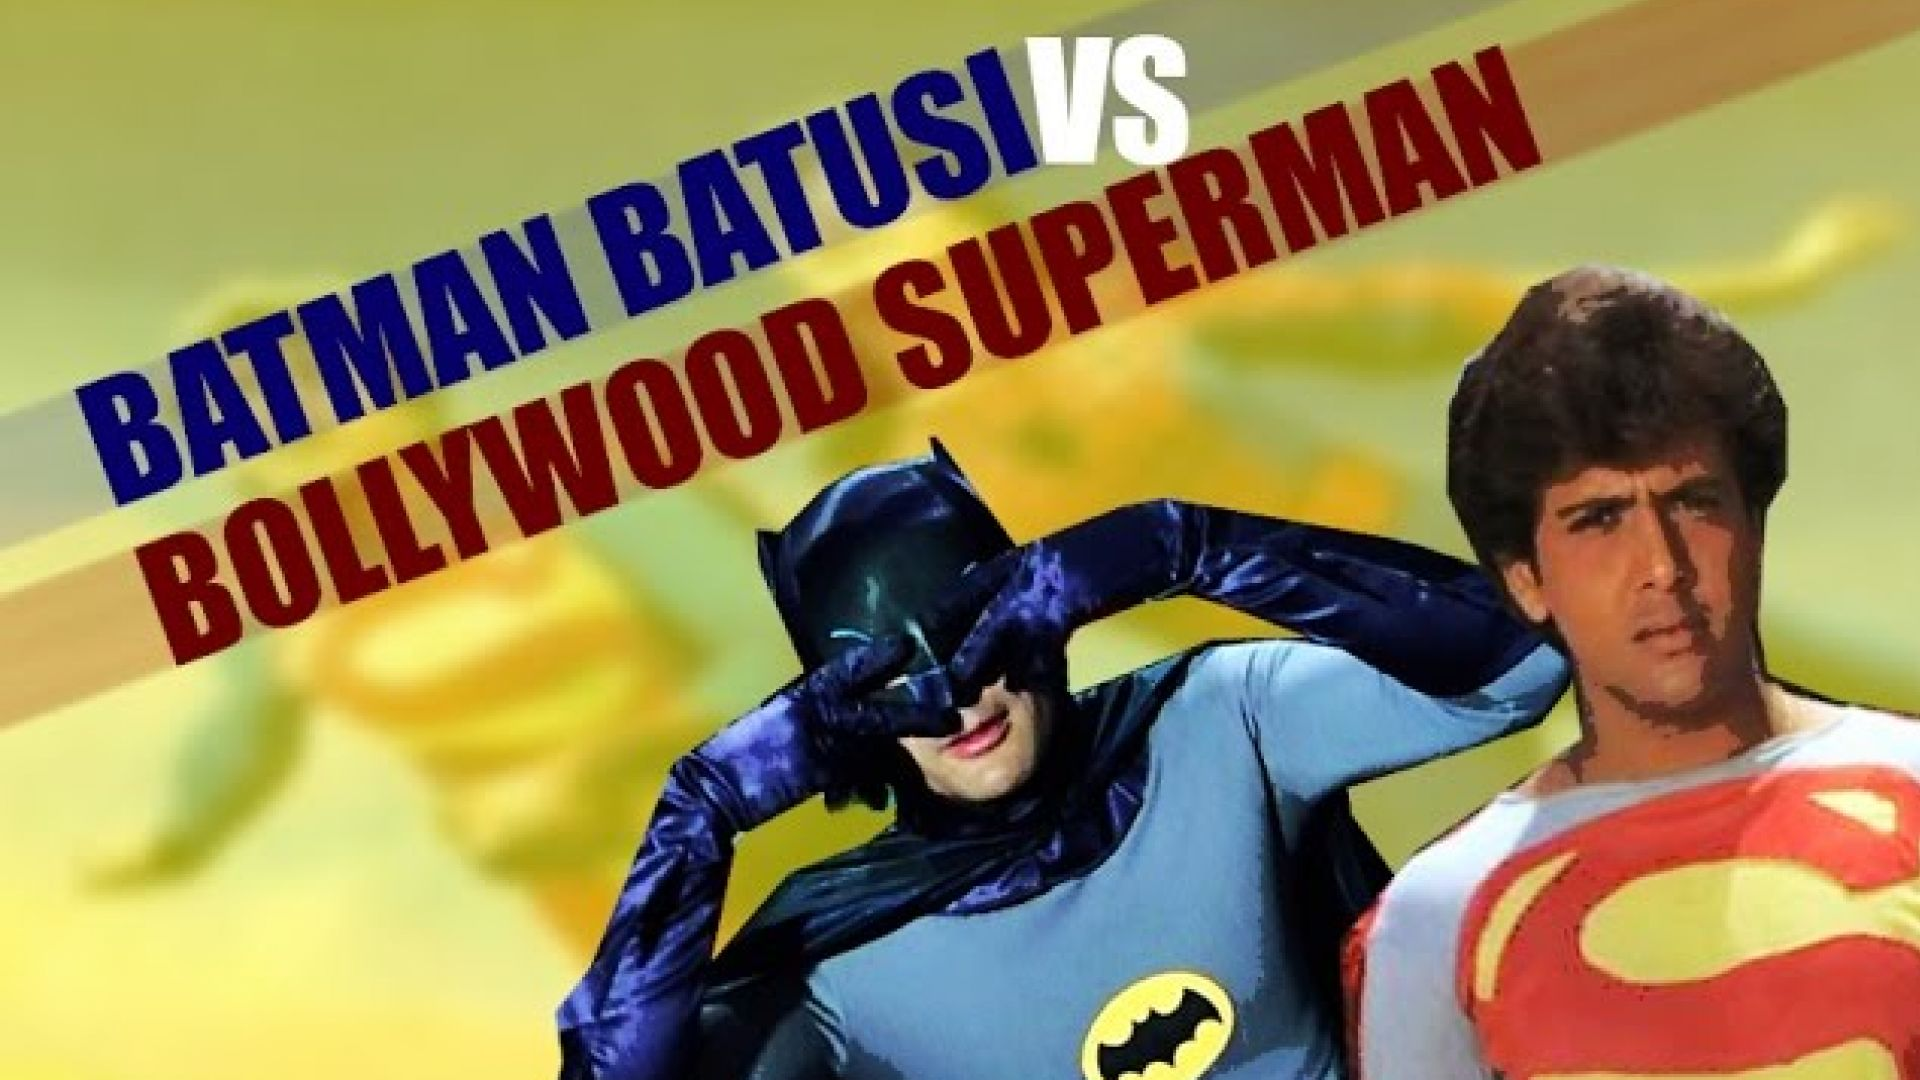 Batman Batusi v Bollywood Superman